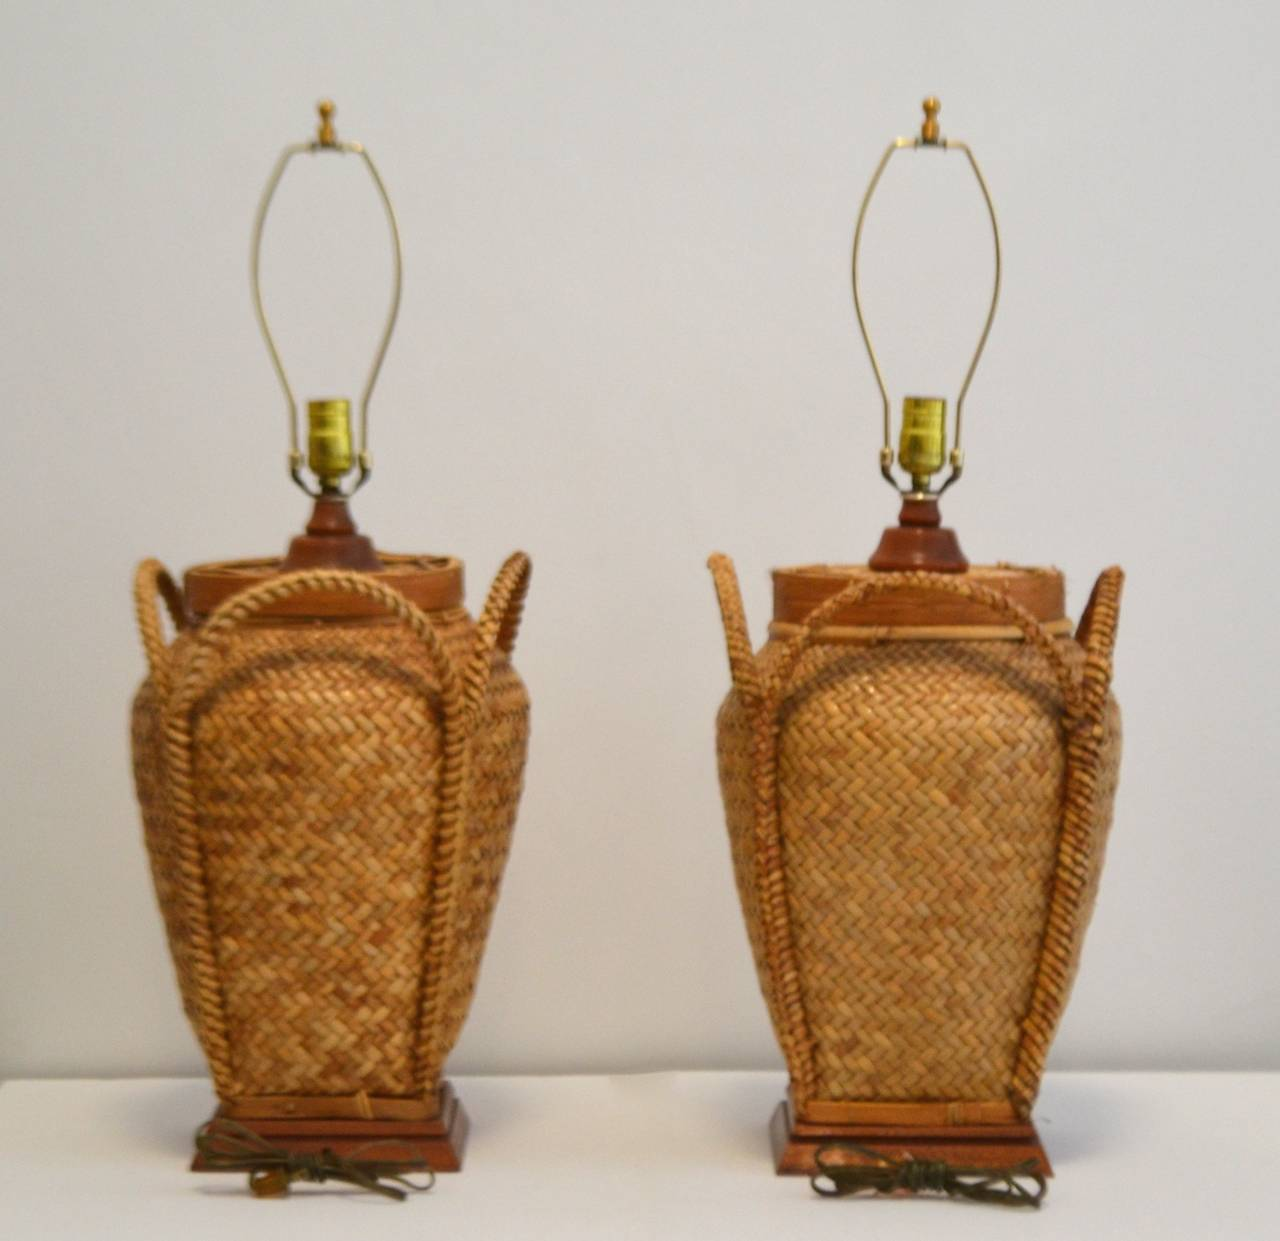 Pair of Woven Rattan Basket Table Lamps at 1stdibs